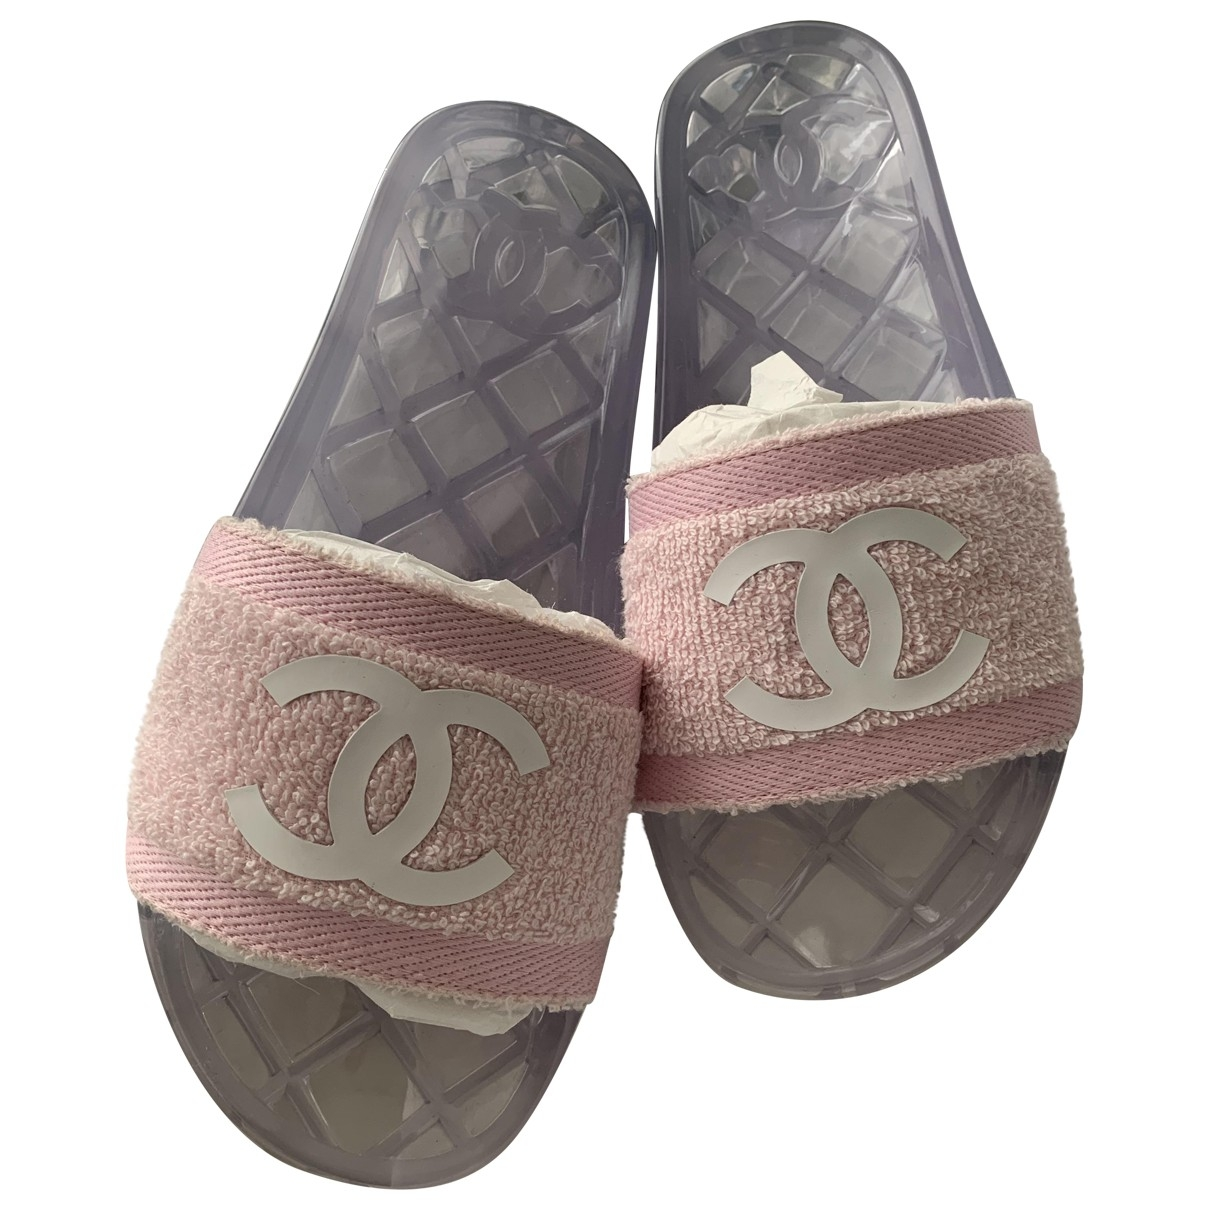 Chanel \N Pink Cloth Mules & Clogs for Women 38 EU